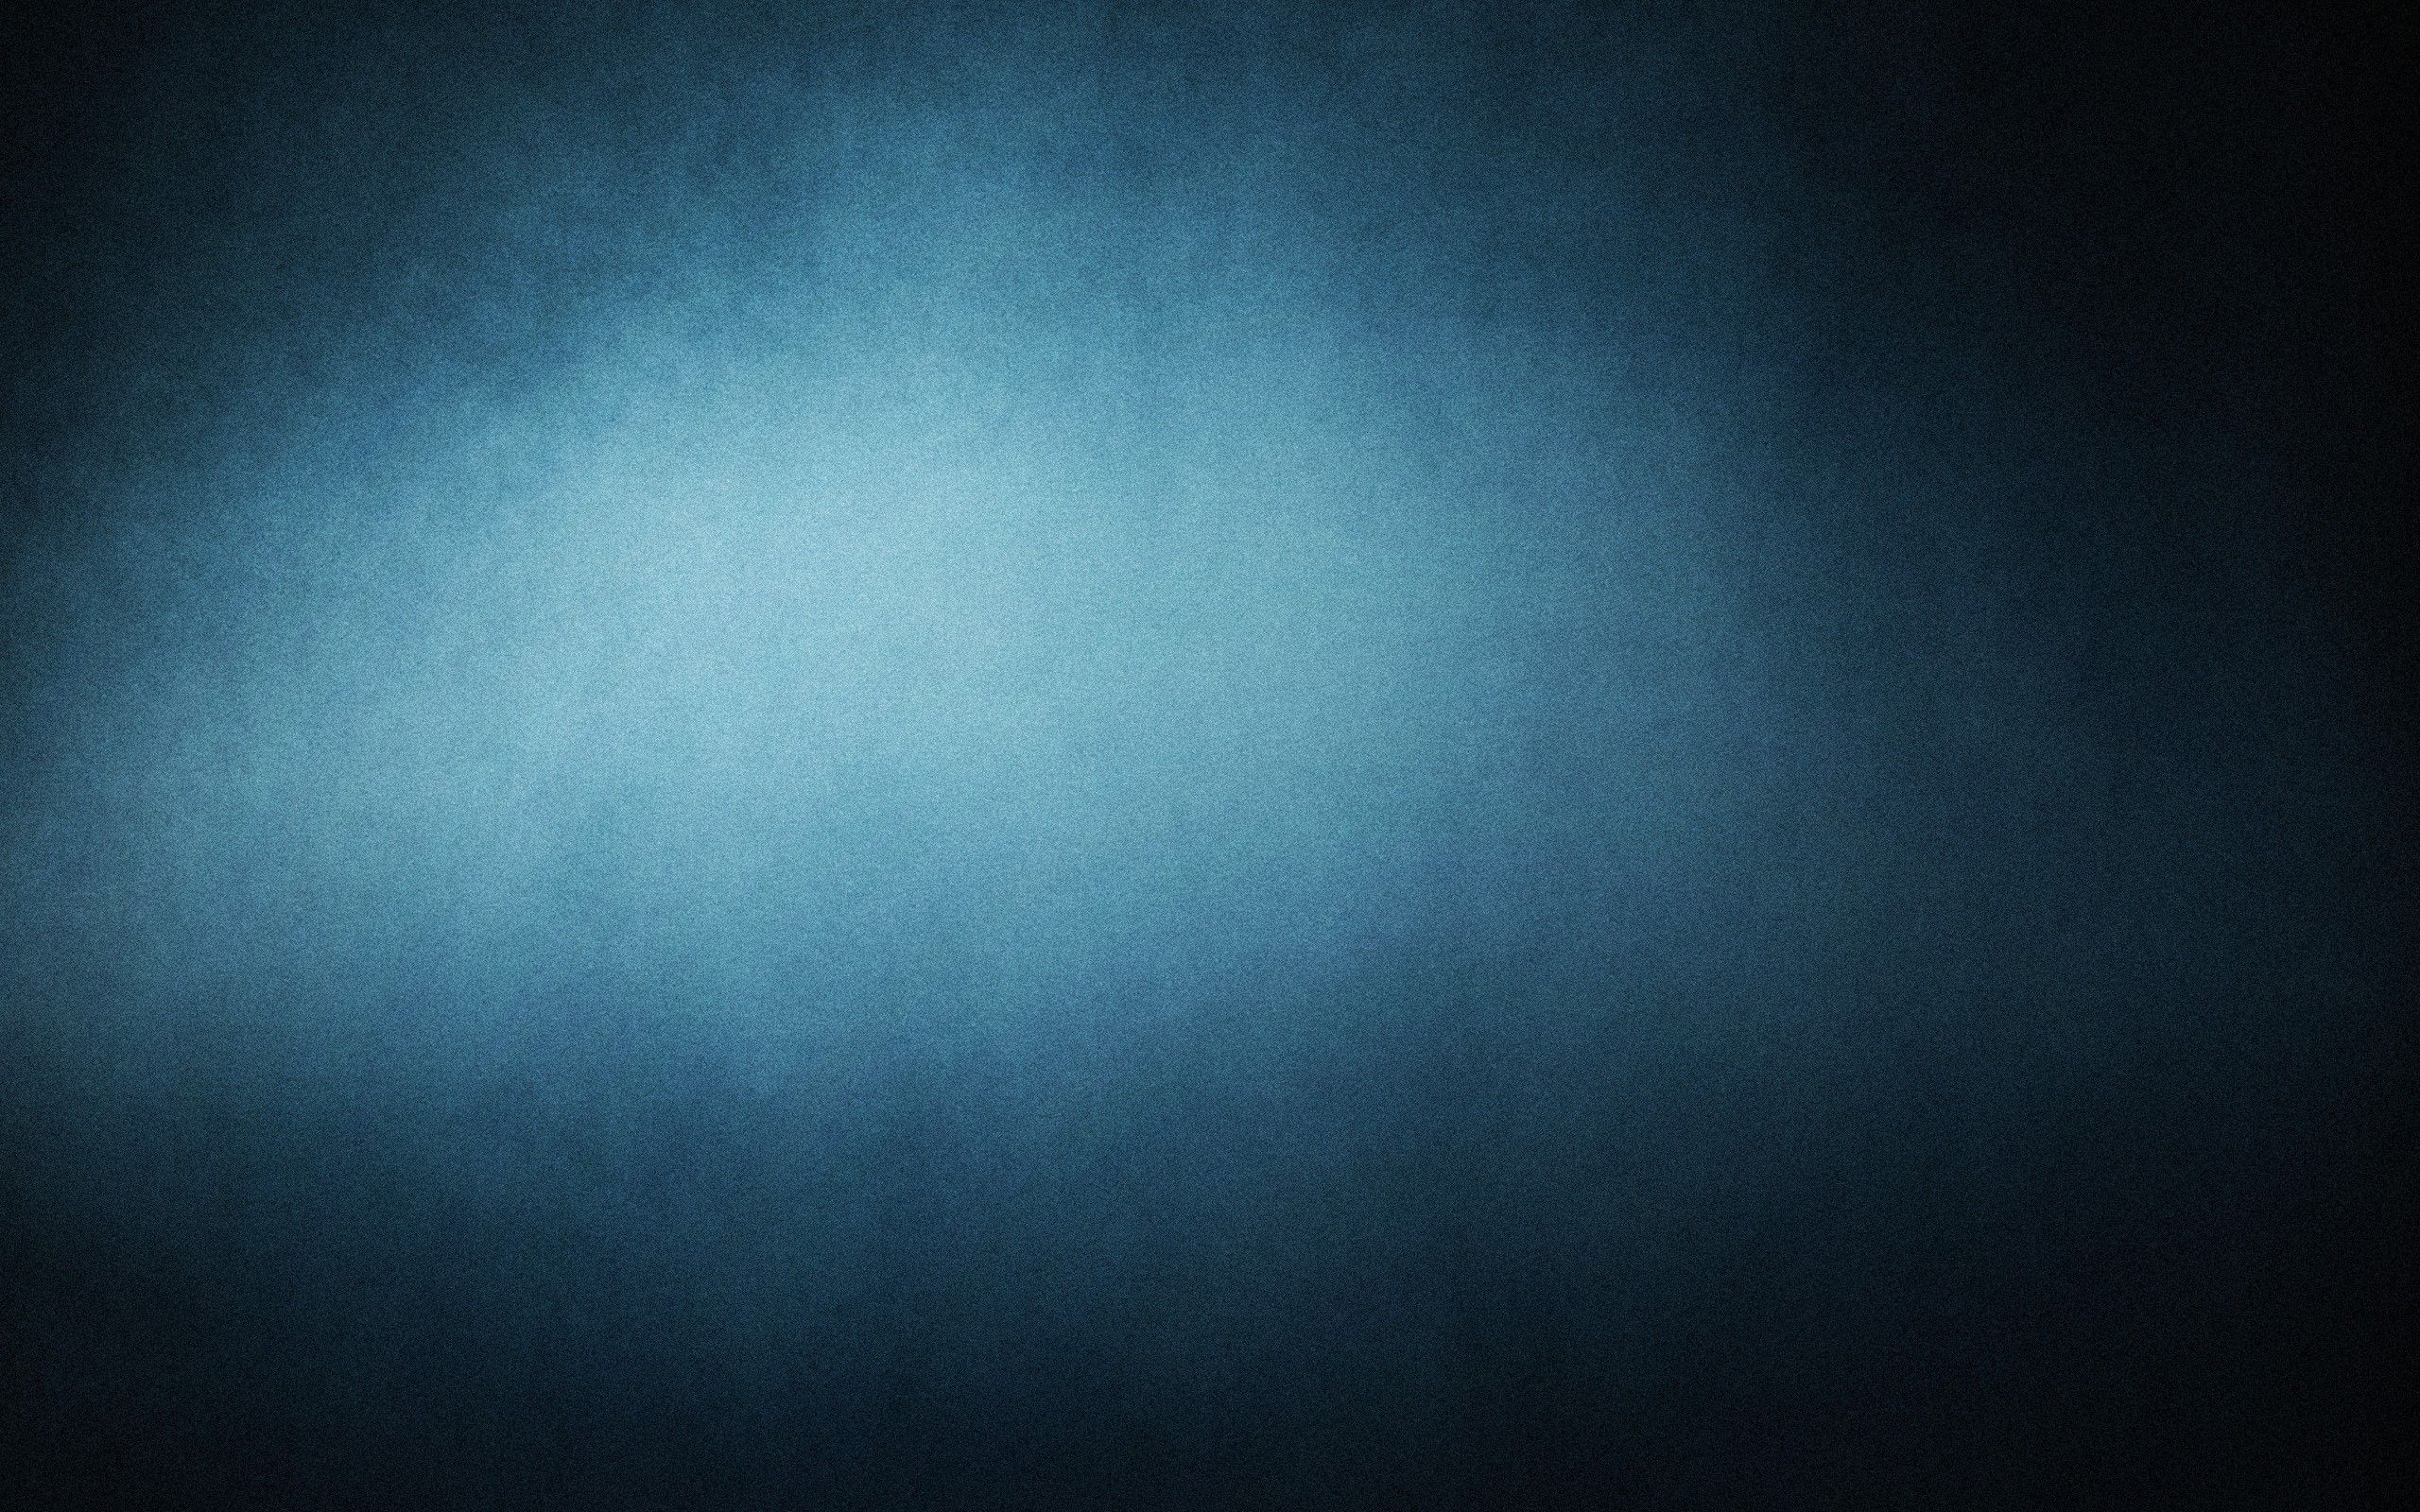 blue background, dark, simple background, gradient,